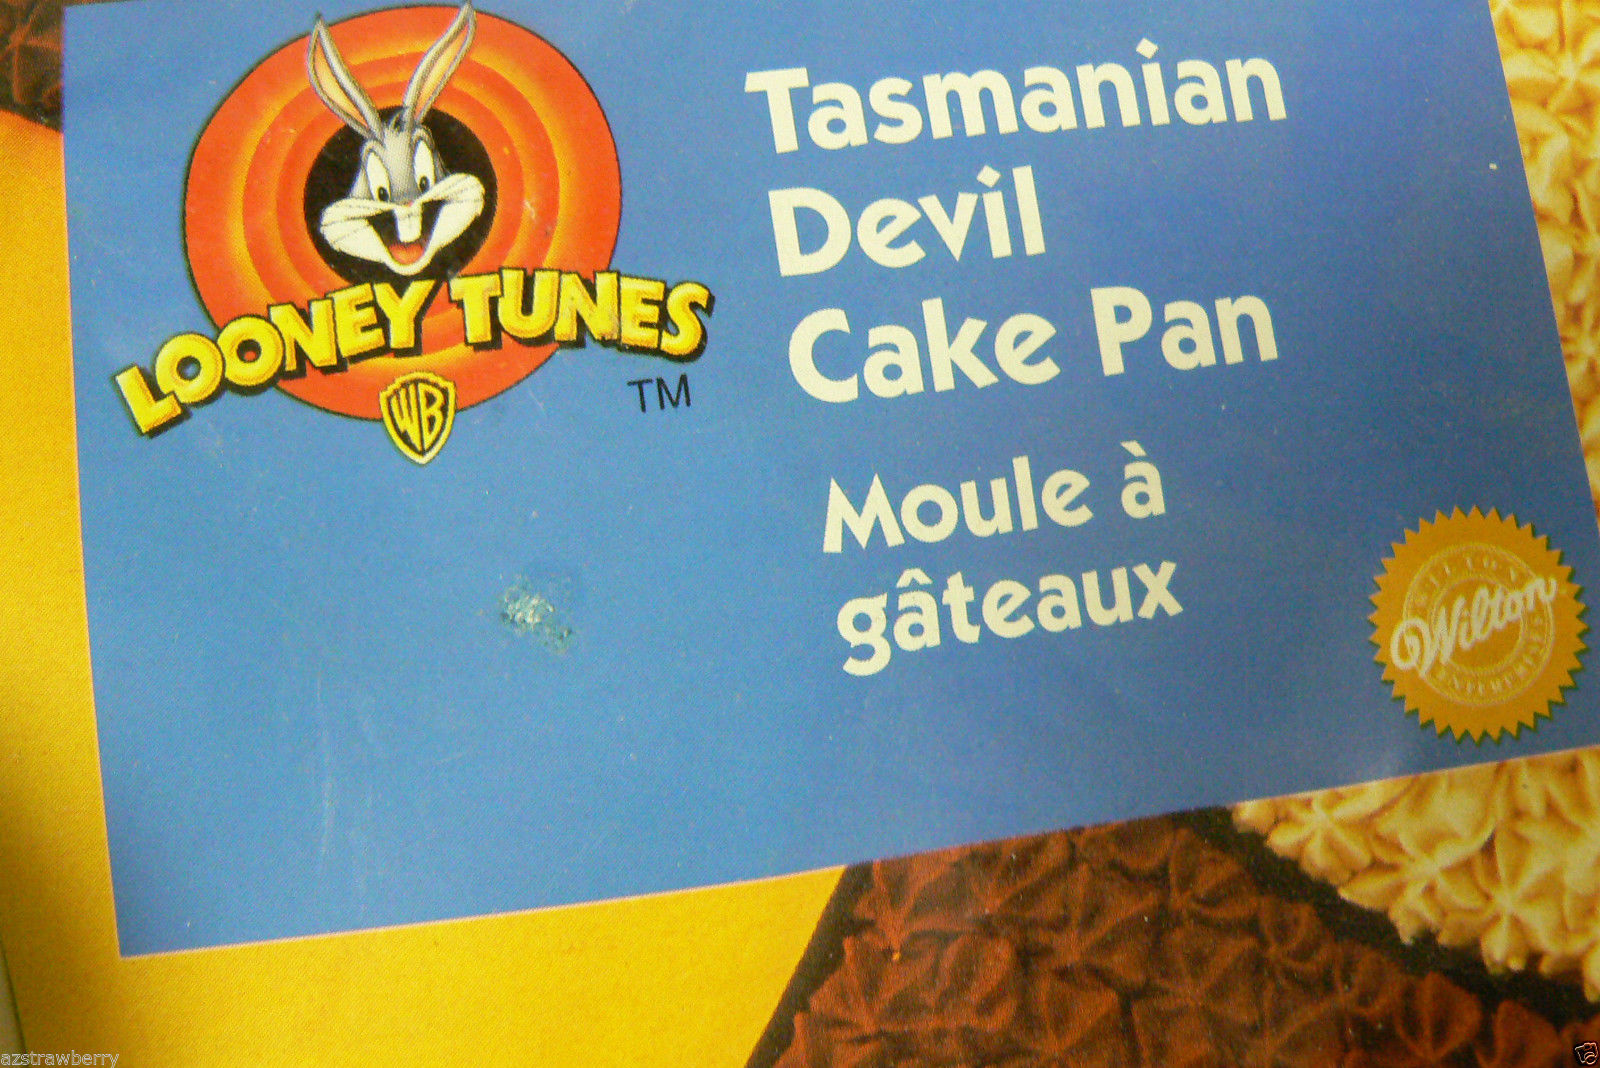 How To Make A Tasmanian Devil Cake